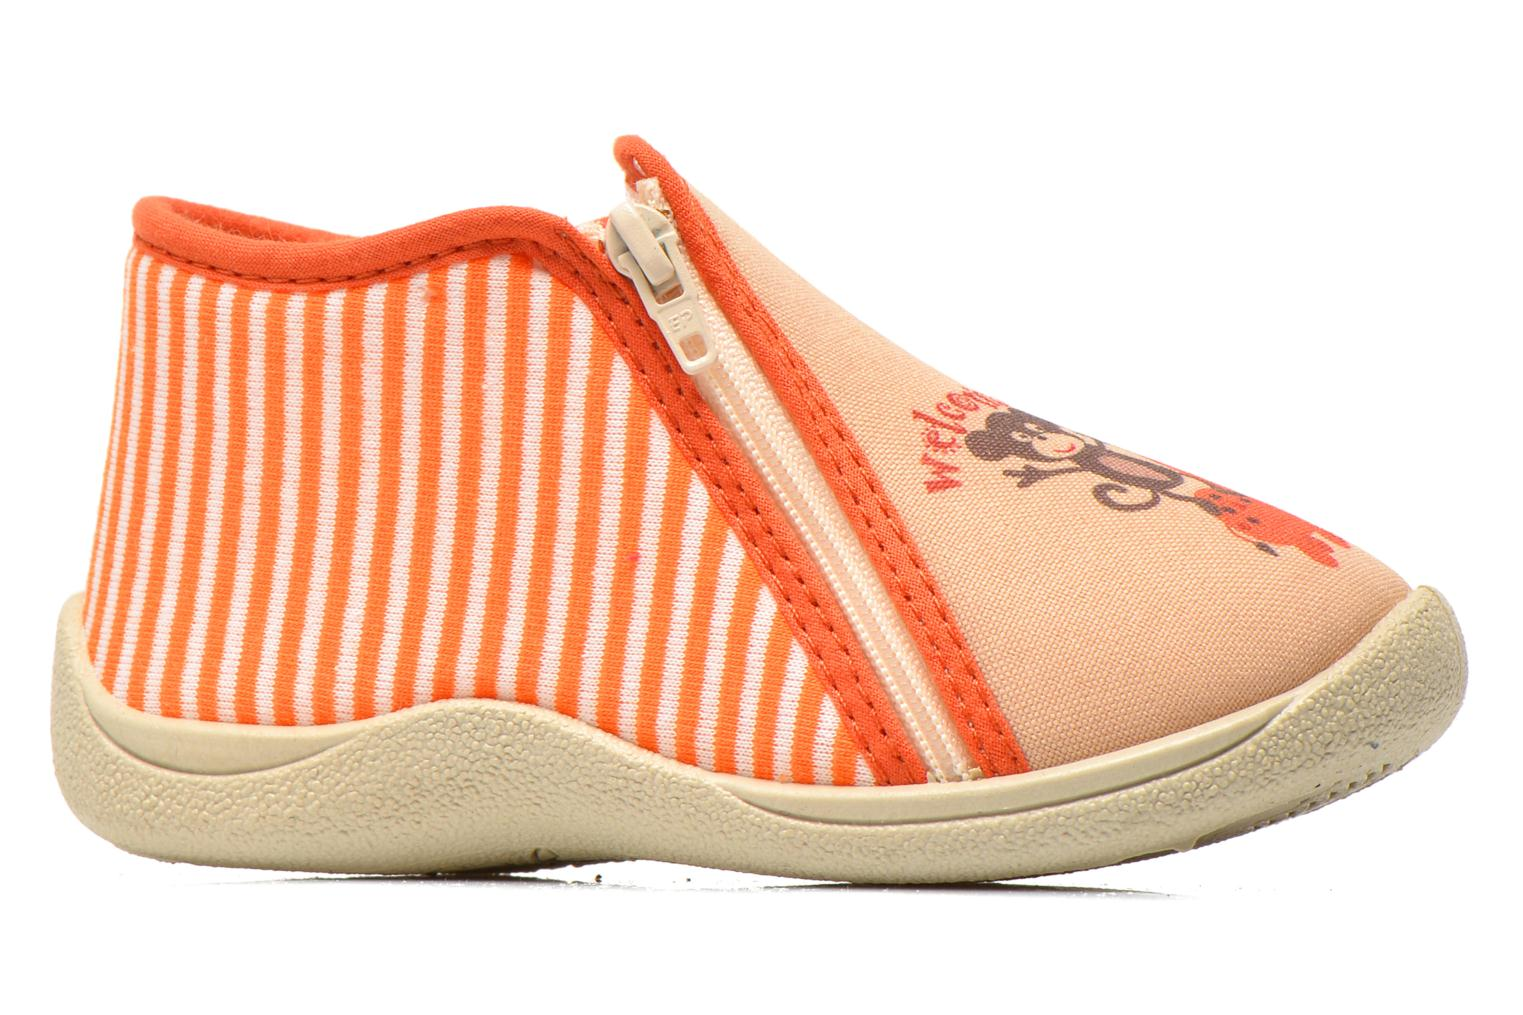 GESSY Orange/Beige